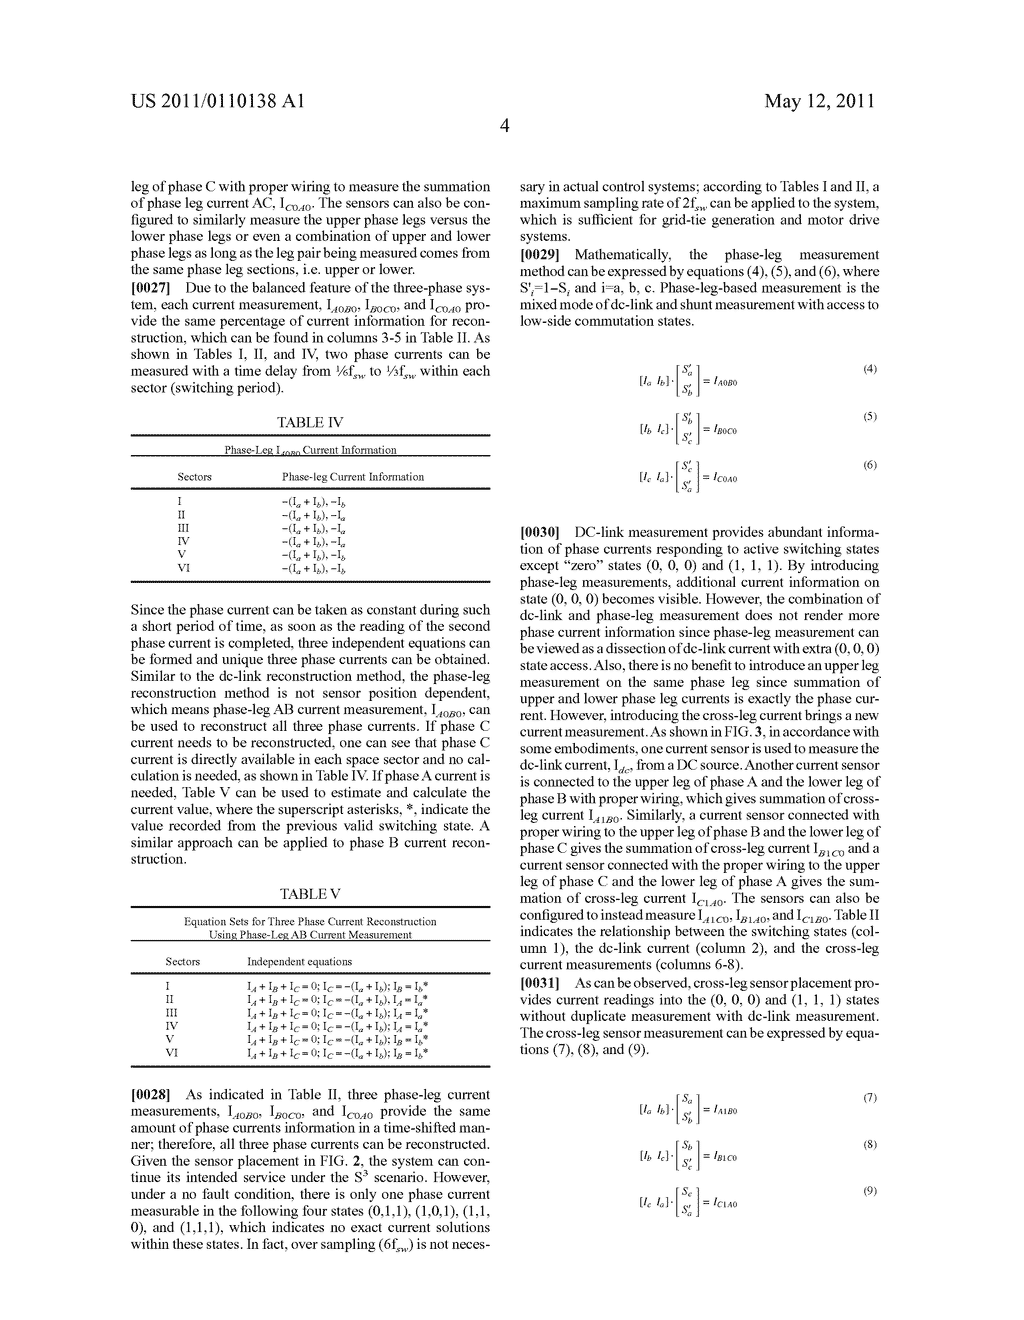 Methods and Systems for Phase Current Reconstruction of AC Drive Systems - diagram, schematic, and image 13